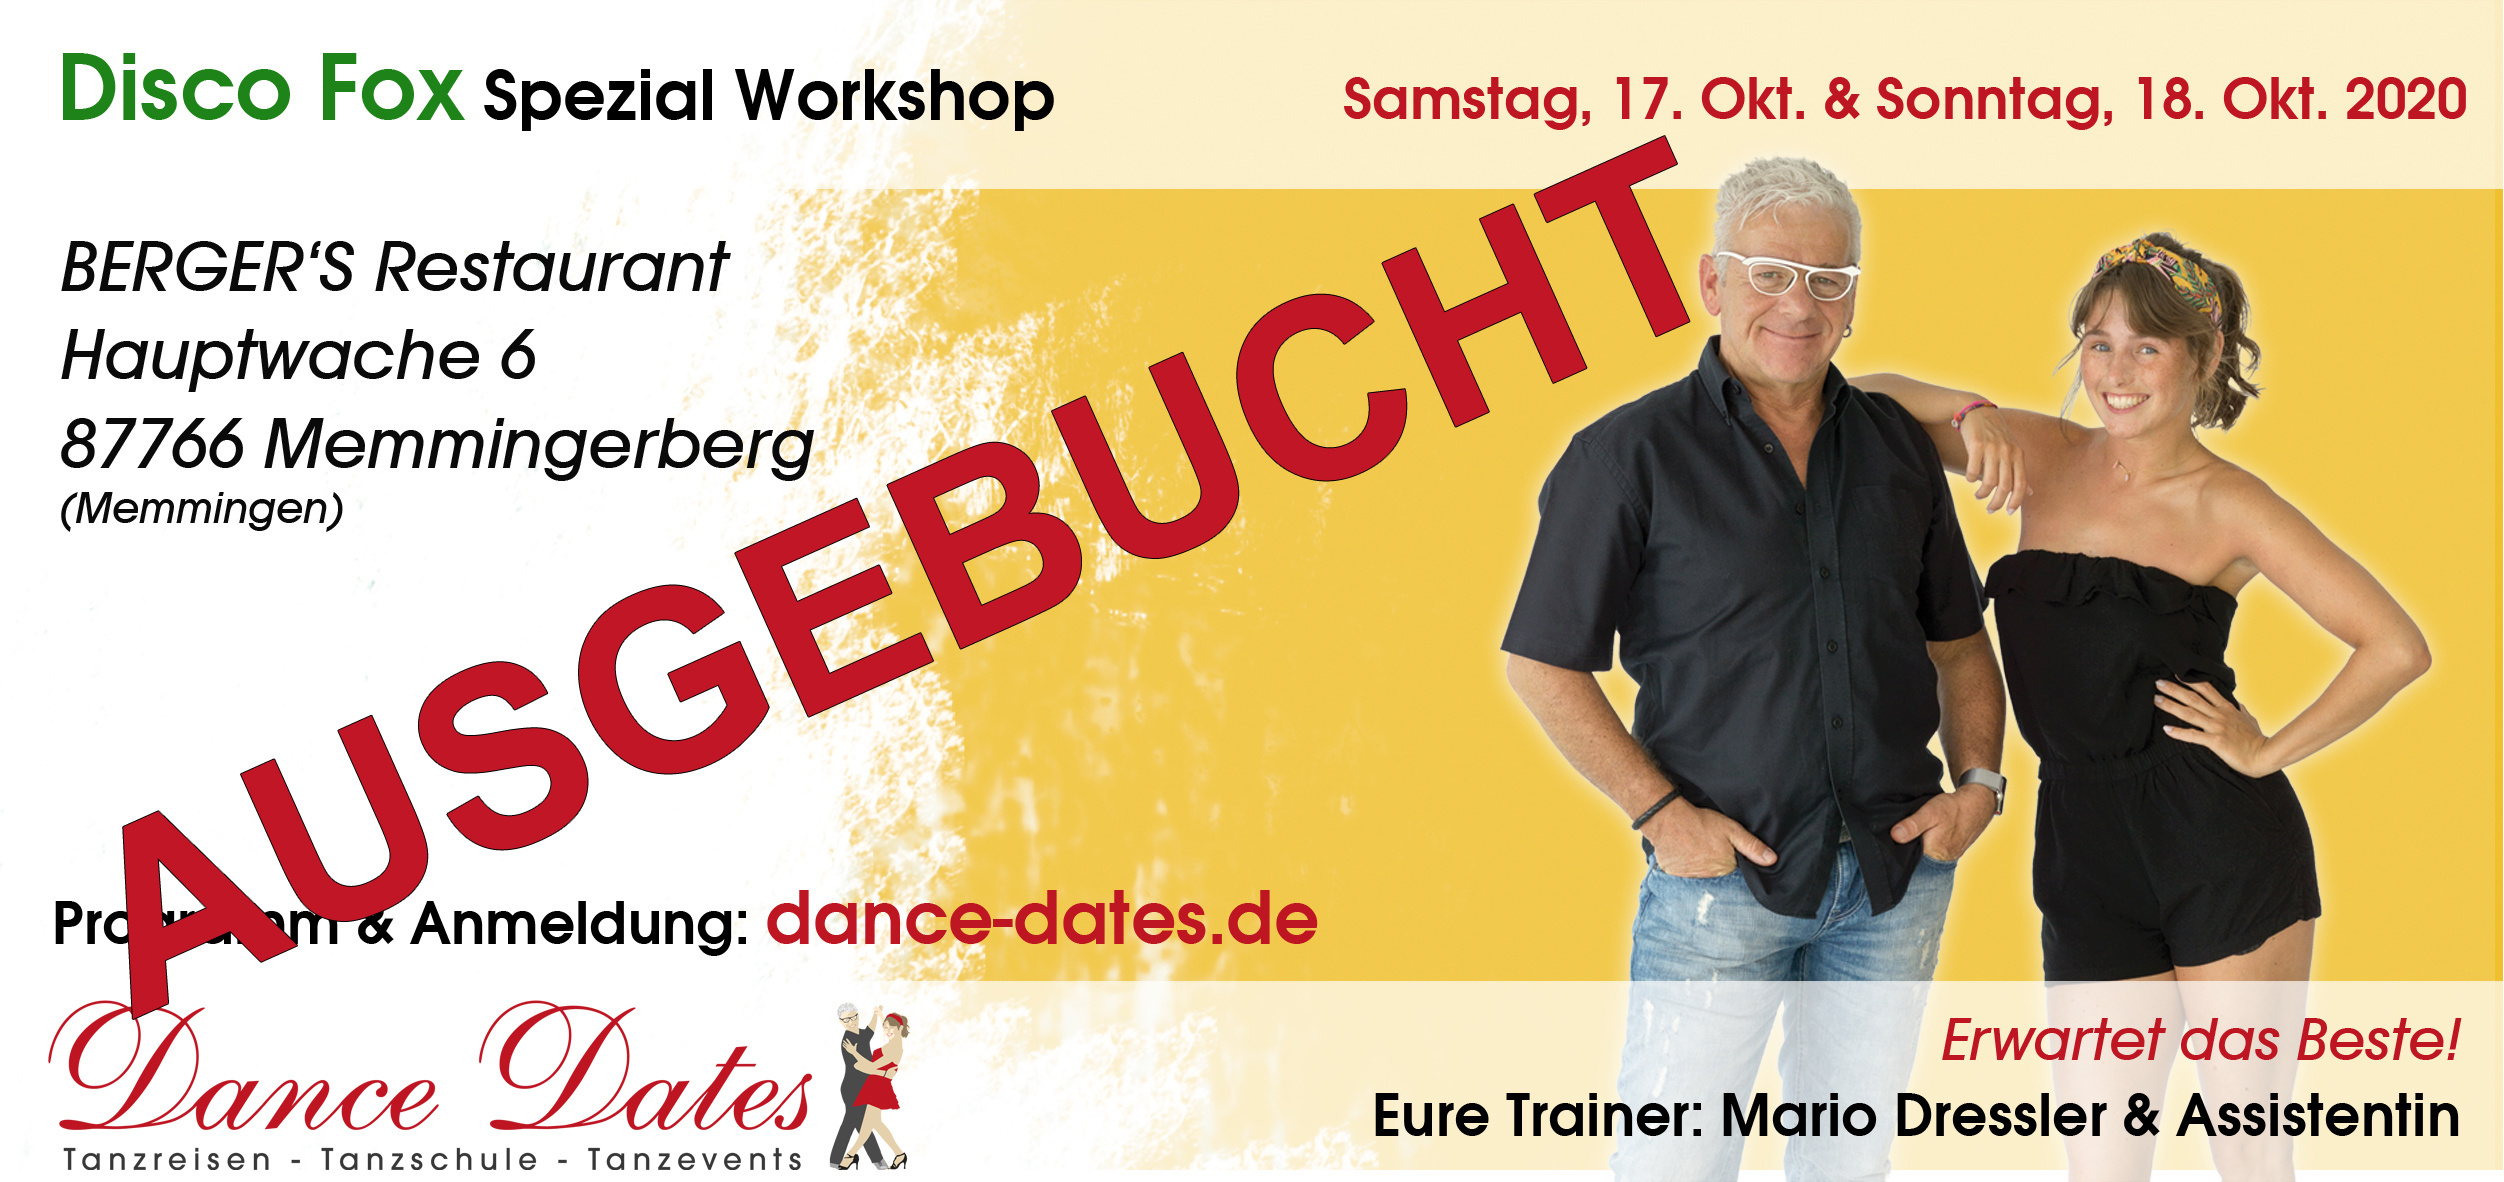 Disco Fox Spezial Workshop Weekend / Memmingen @ Berger's Airporthotel Memmingen